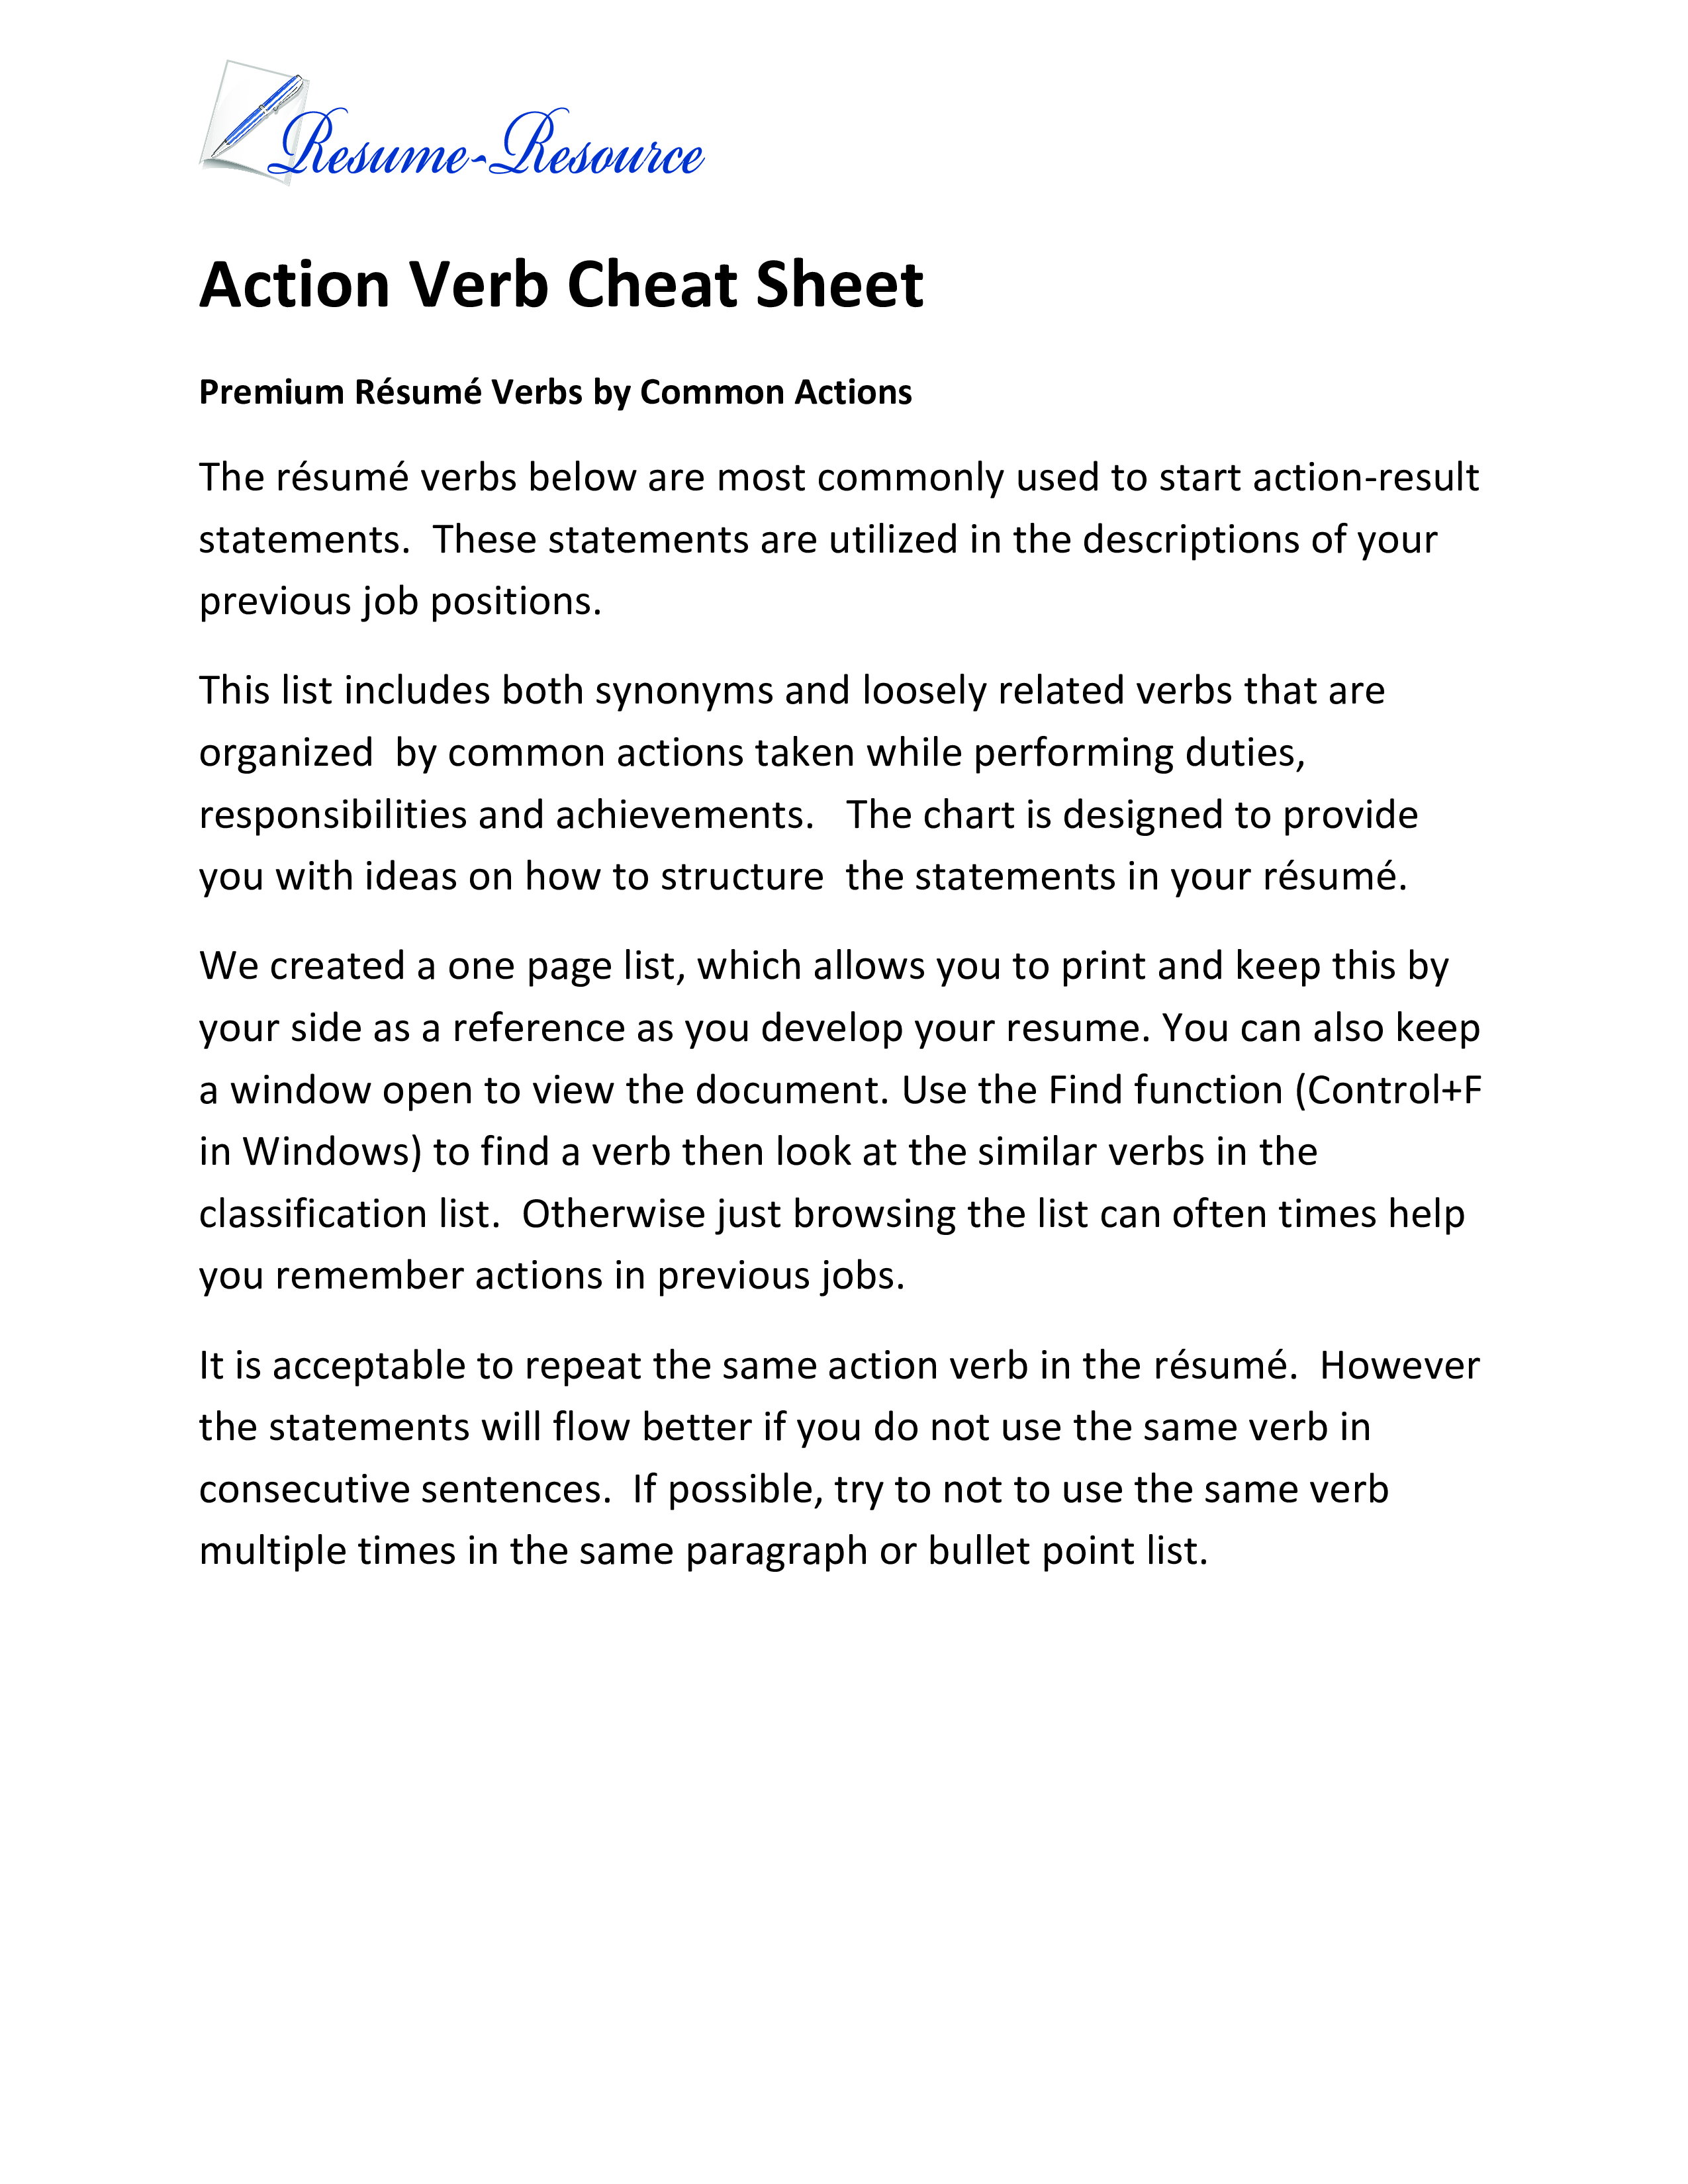 Free Action Verb Cheatsheet Templates At Allbusinesstemplates Com